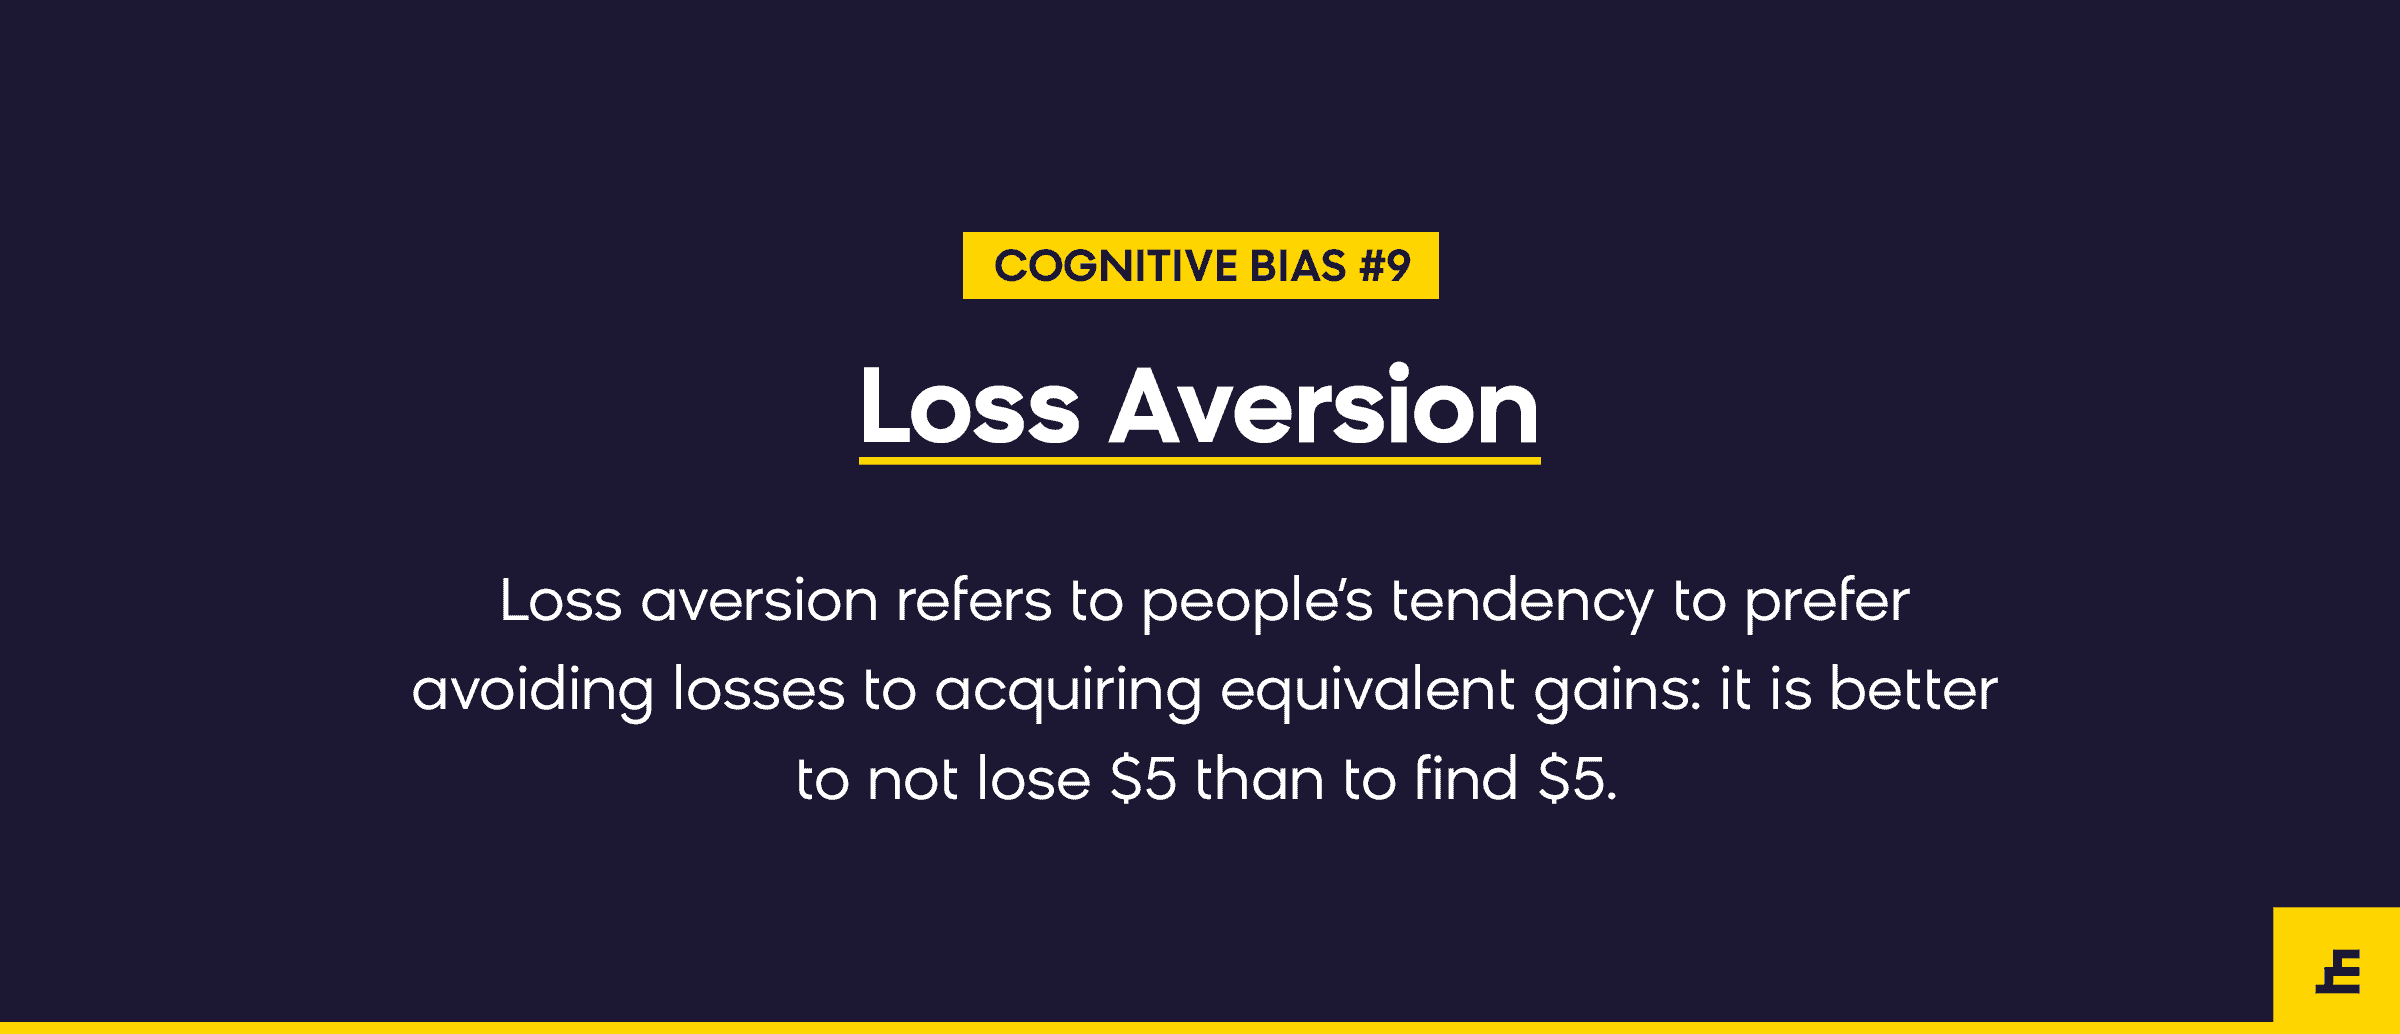 cognitive bias - loss aversion